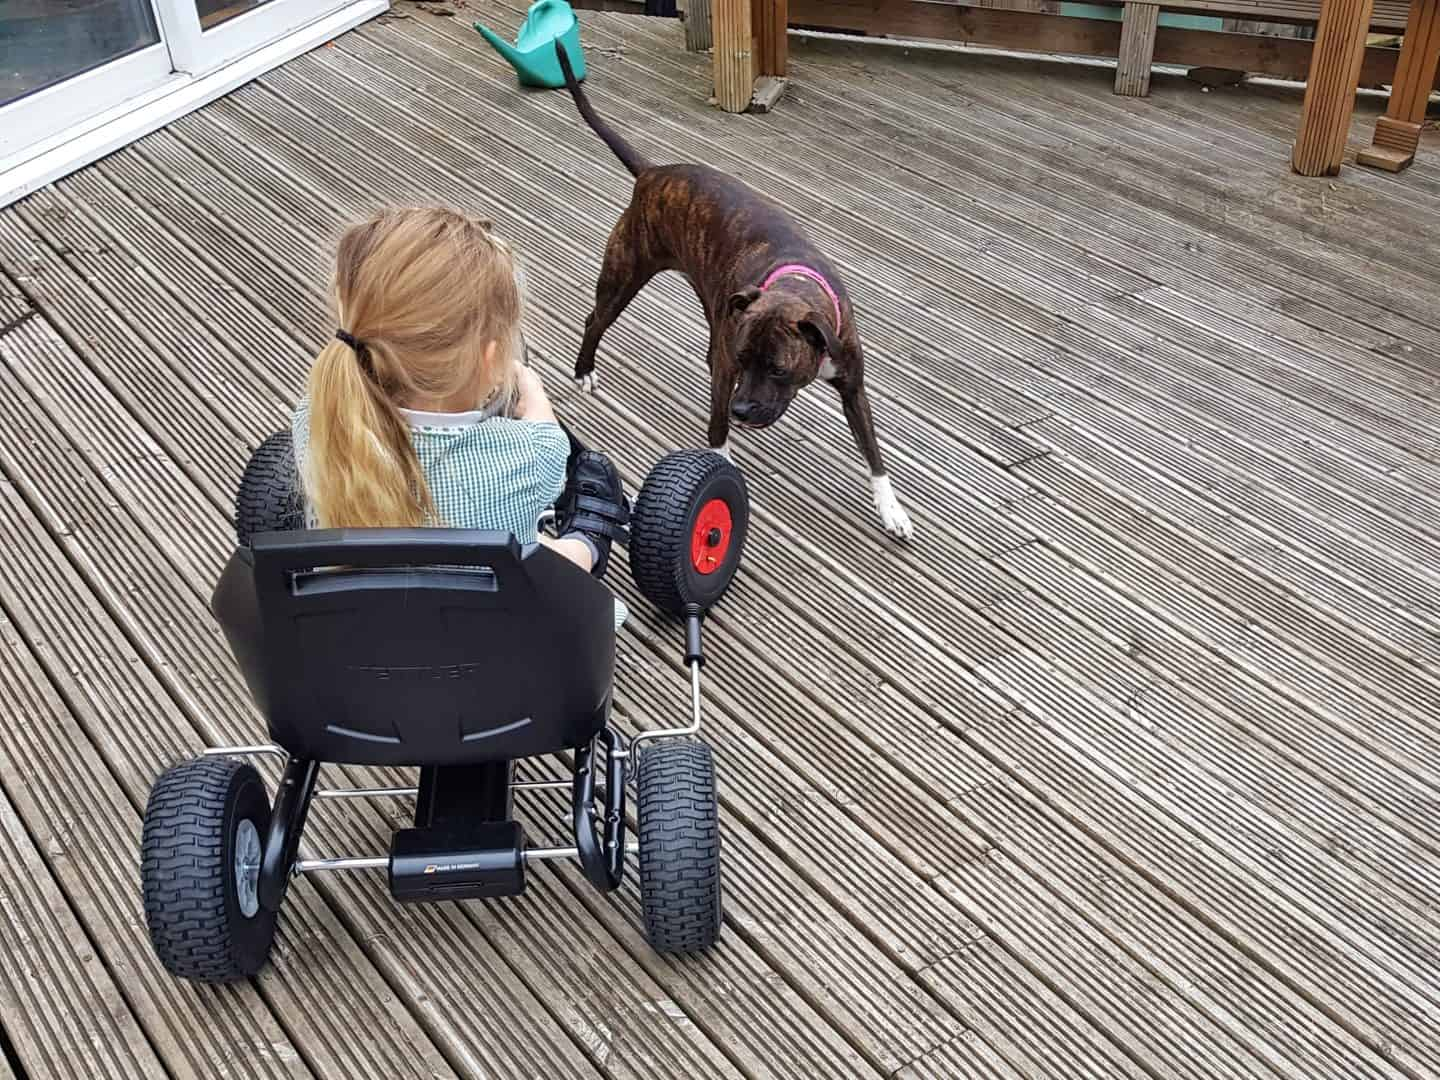 Girl riding Kettler Barcelona Air Go Kart back view with dog watching